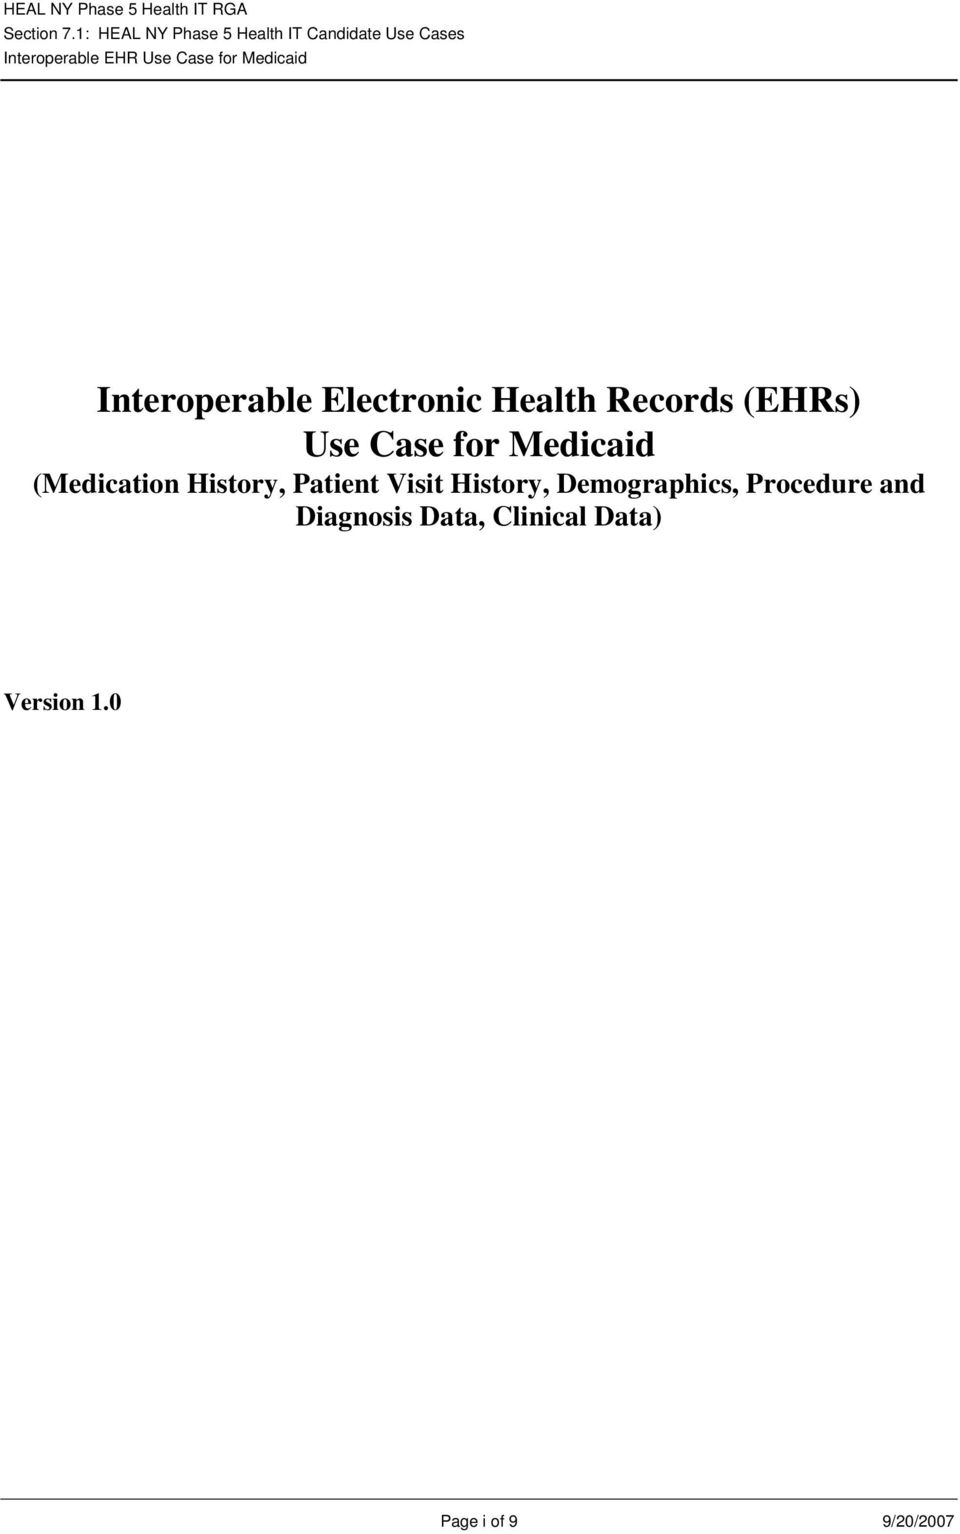 Medicaid Interoperable Electronic Health Records (EHRs) Use Case for Medicaid